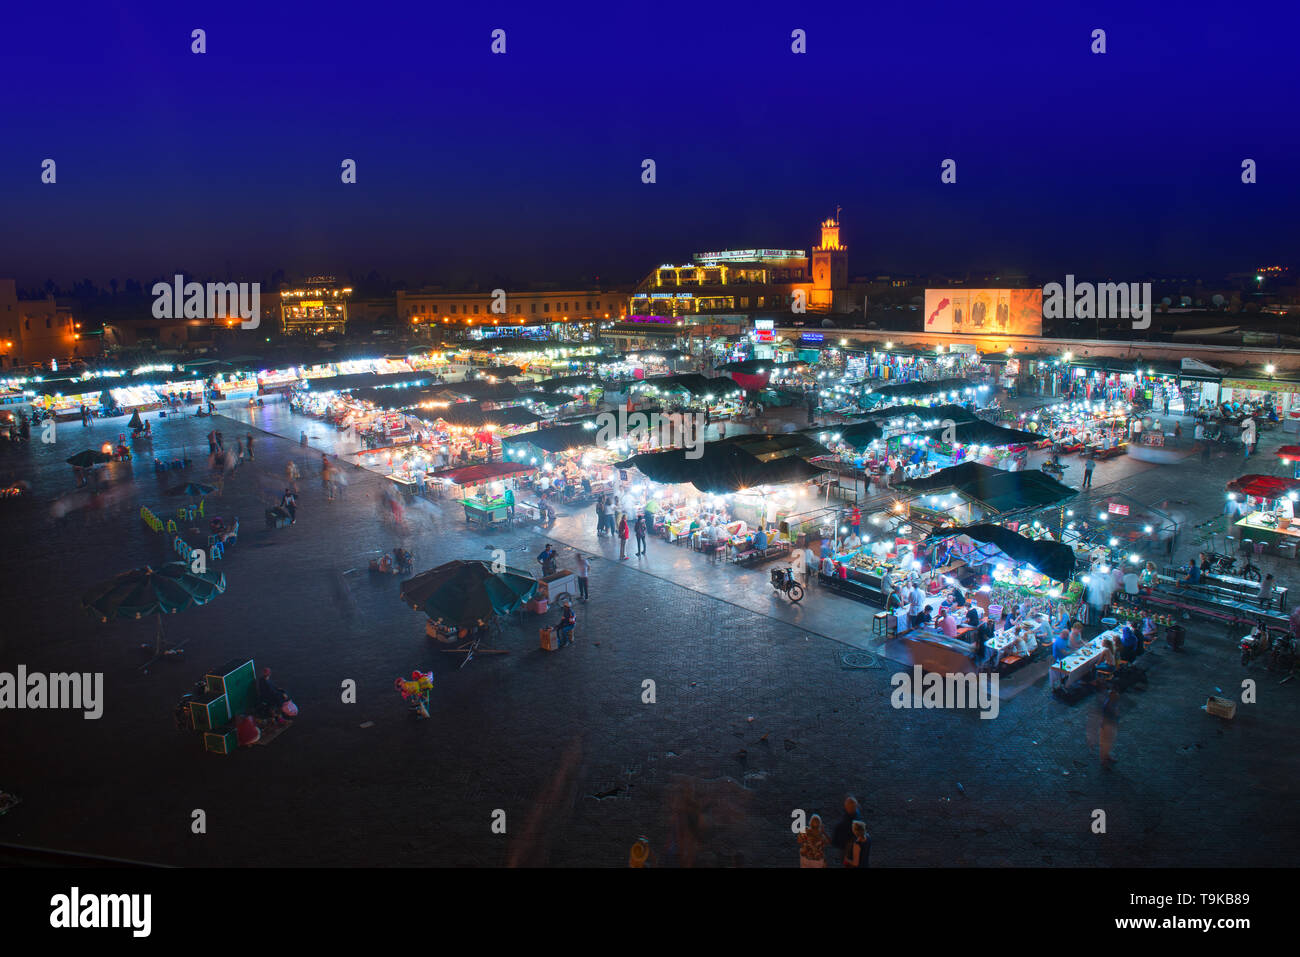 Marrakech, Morocco - May 11 2019: Jema Eel-fna Square seen at night, full of life and activities, tourists, merchants, restaurants, stalls. Stock Photo